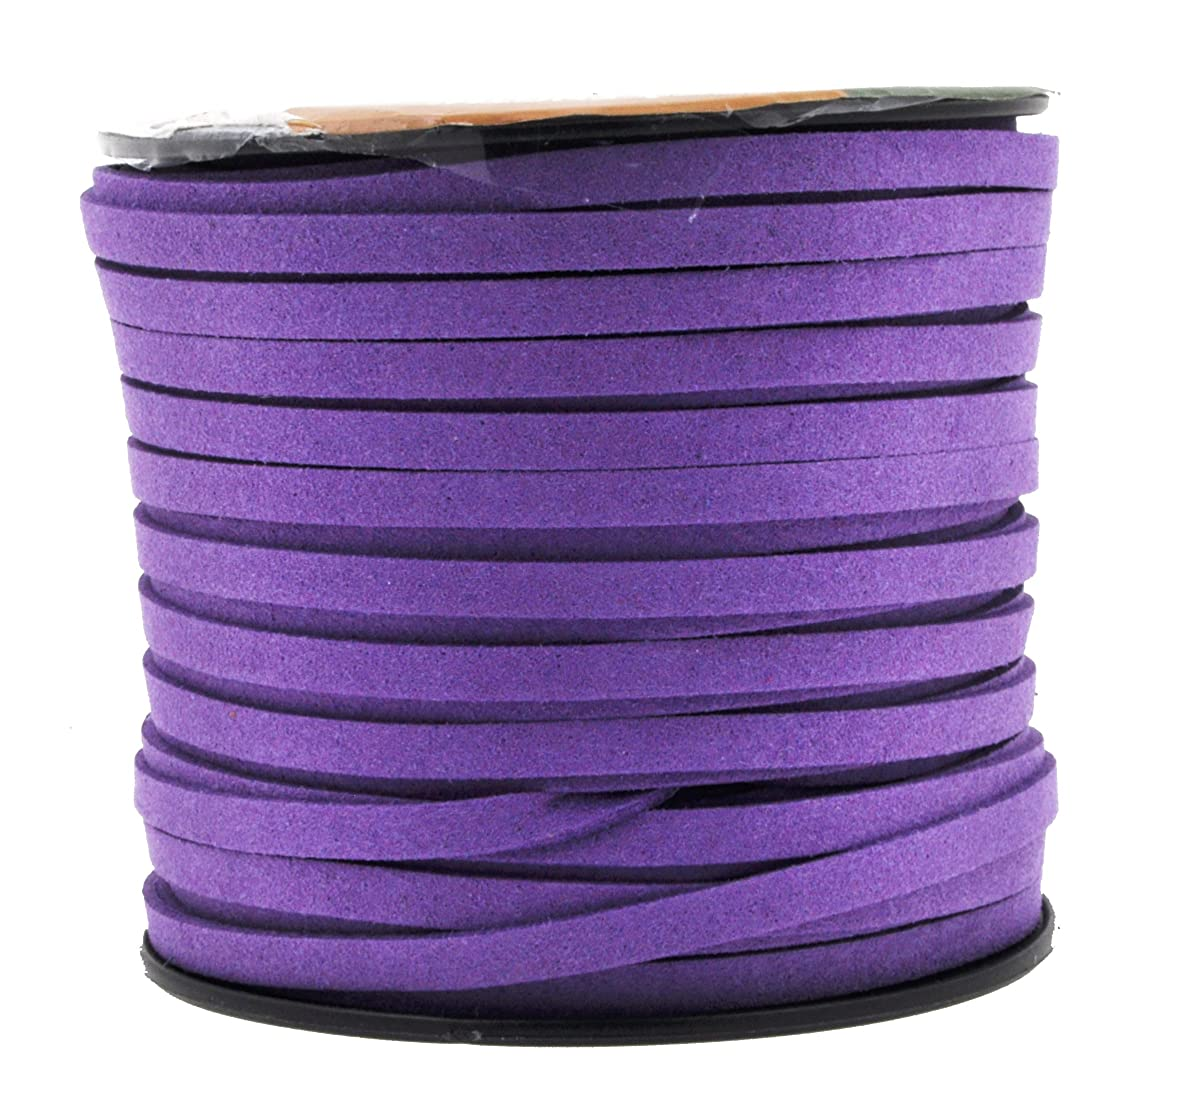 Mandala Crafts 50 Yards 5mm Wide Jewelry Making Flat Micro Fiber Lace Faux Suede Leather Cord (5mm, Violet)